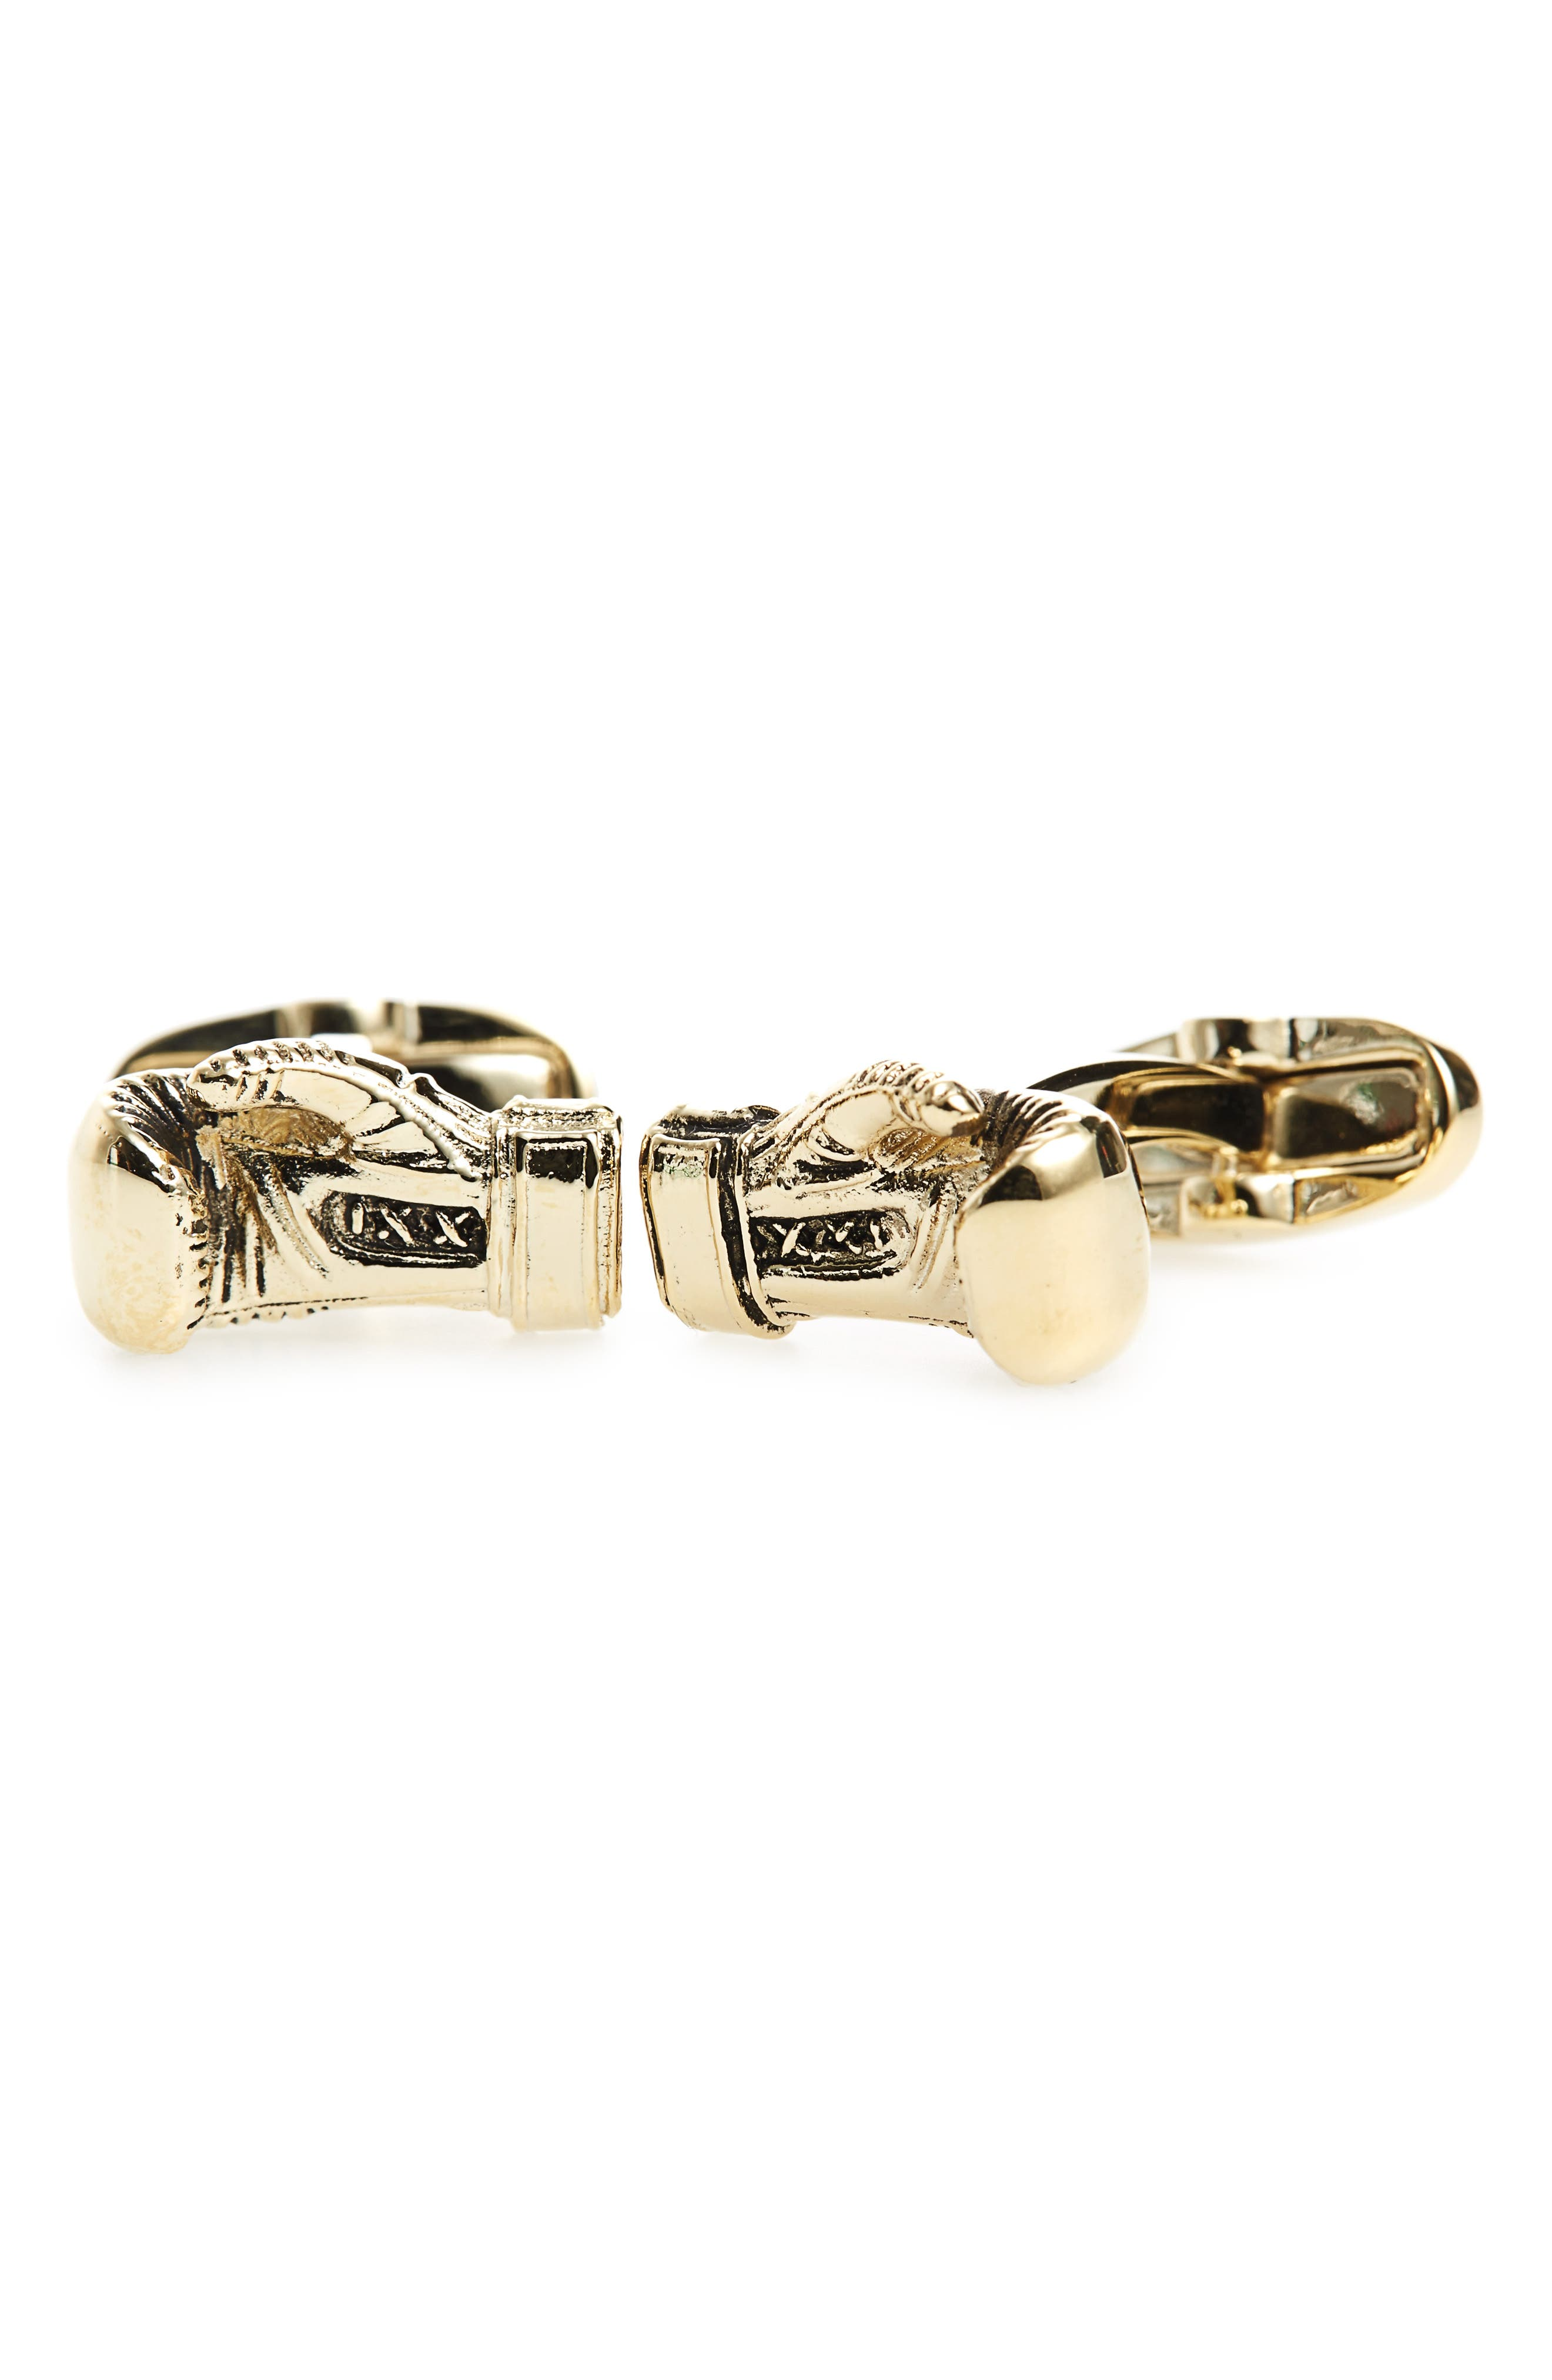 Main Image - Paul Smith Boxing Glove Cuff Links